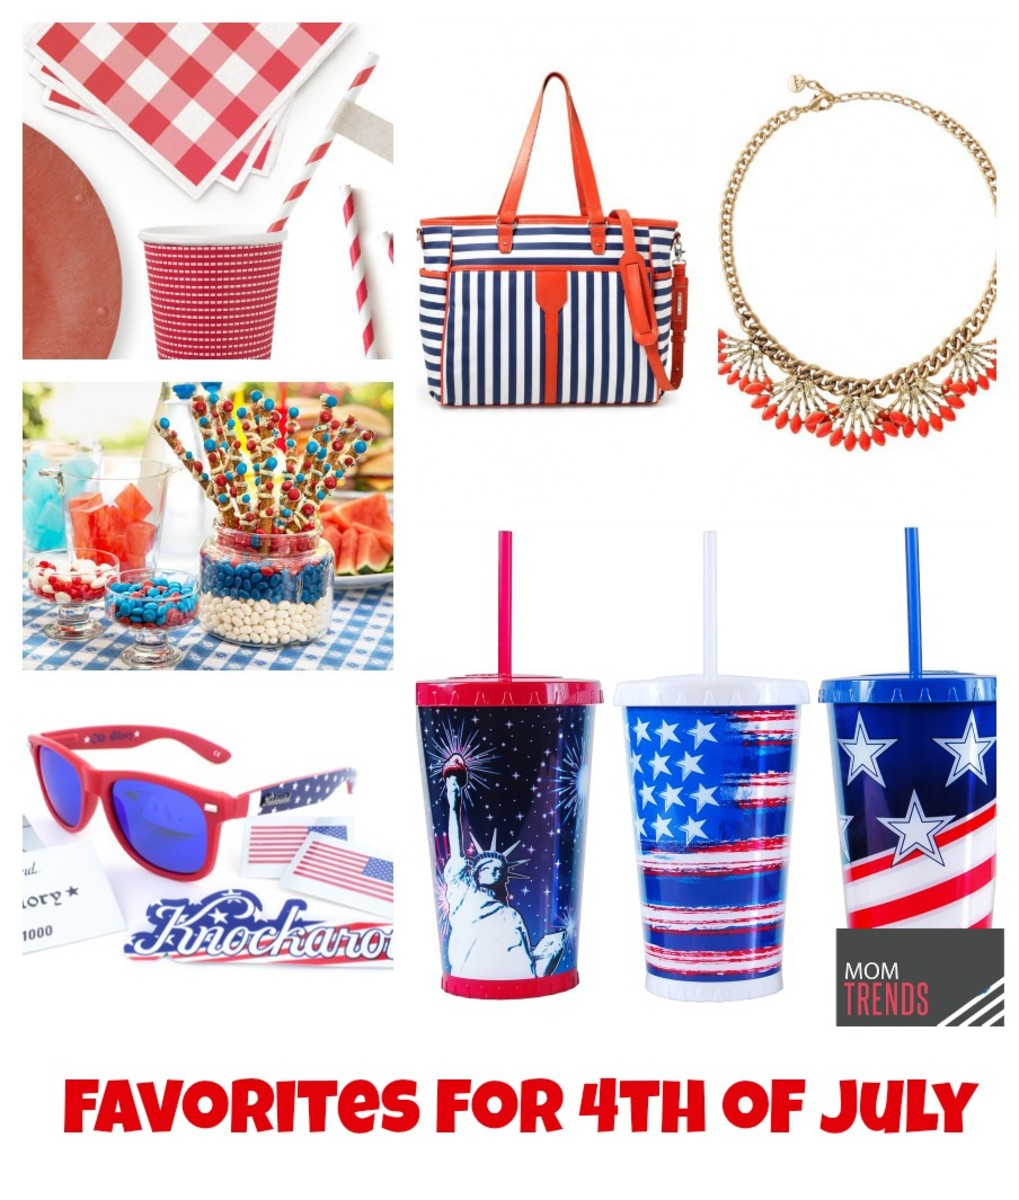 4th of July Guide